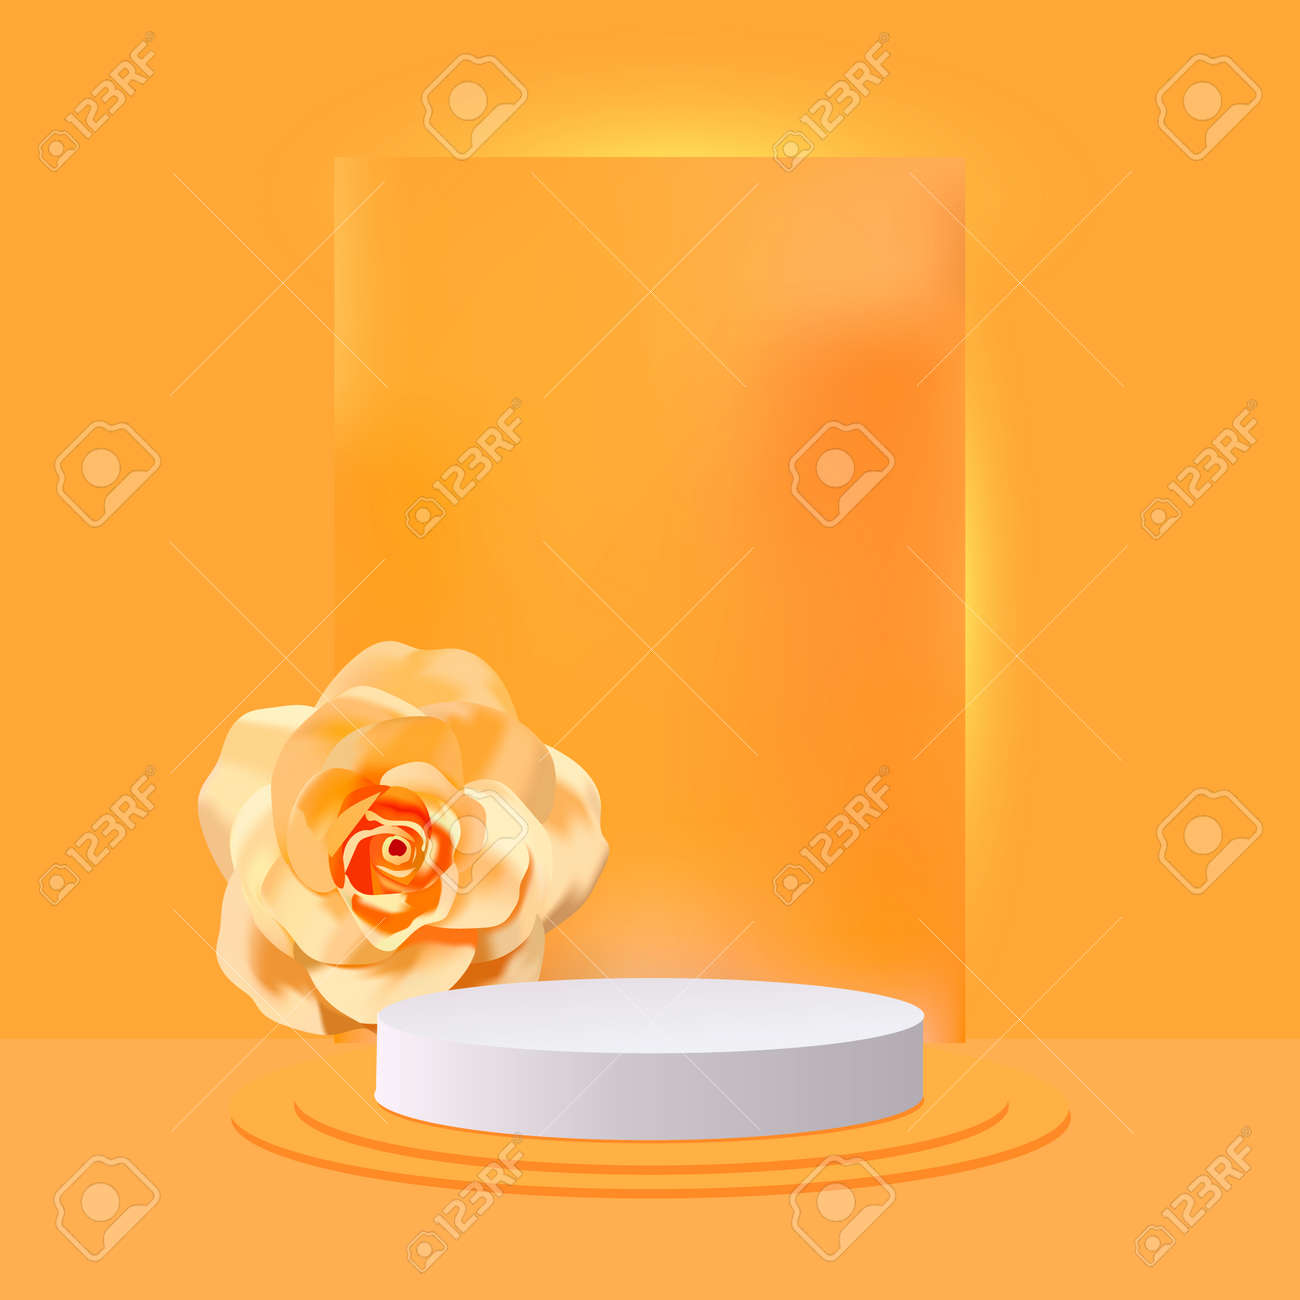 3d abstract design stage with white podium and realistic rose - 169711904